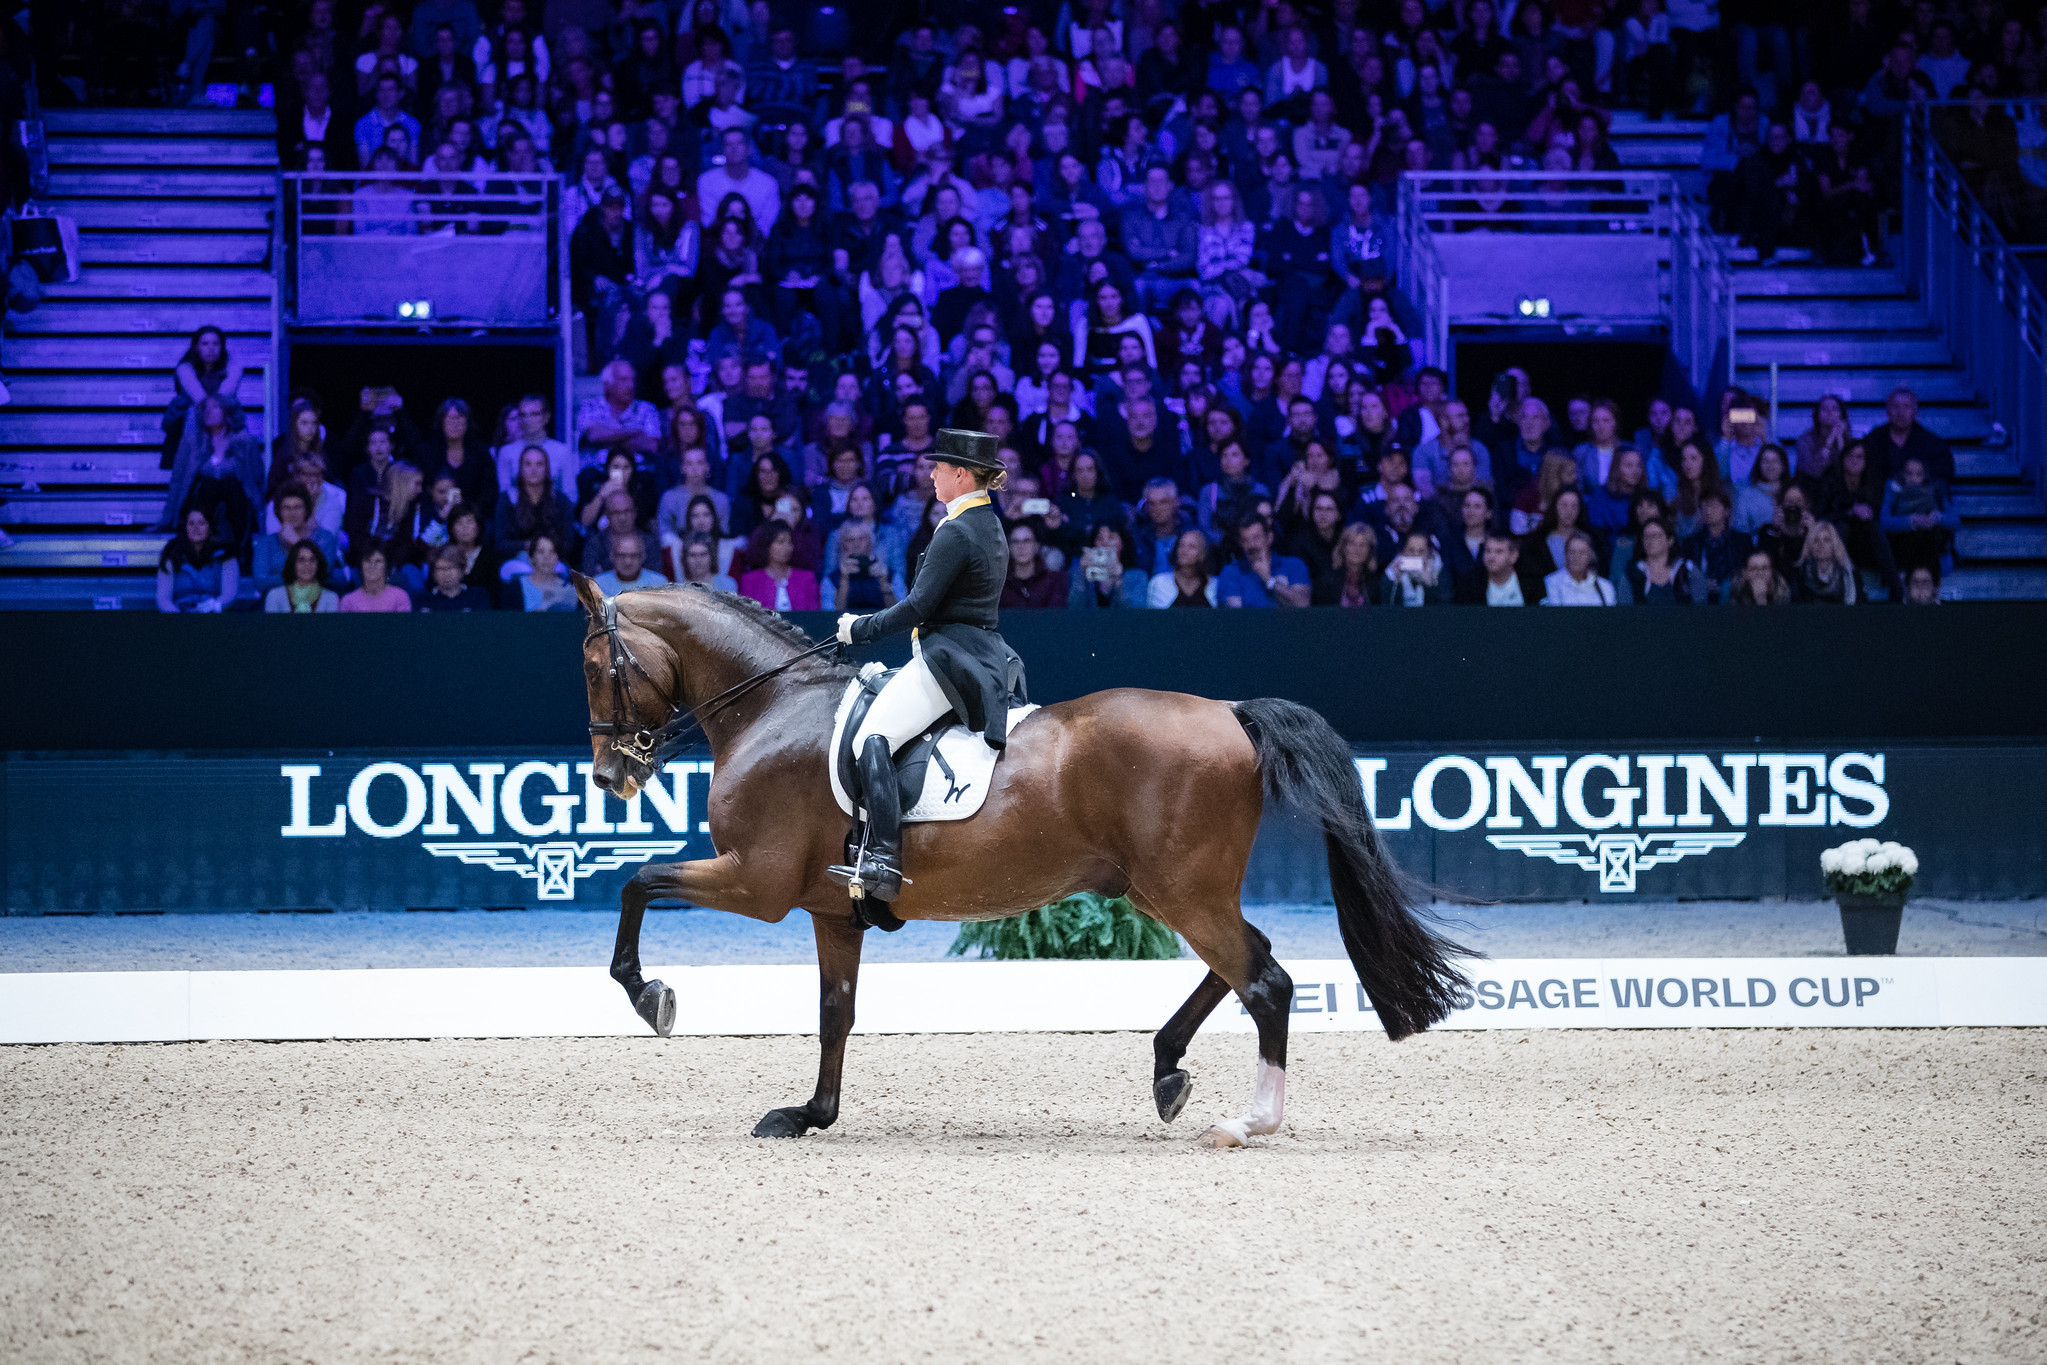 Werth wins Dressage World Cup title in Lyon for third time in a row